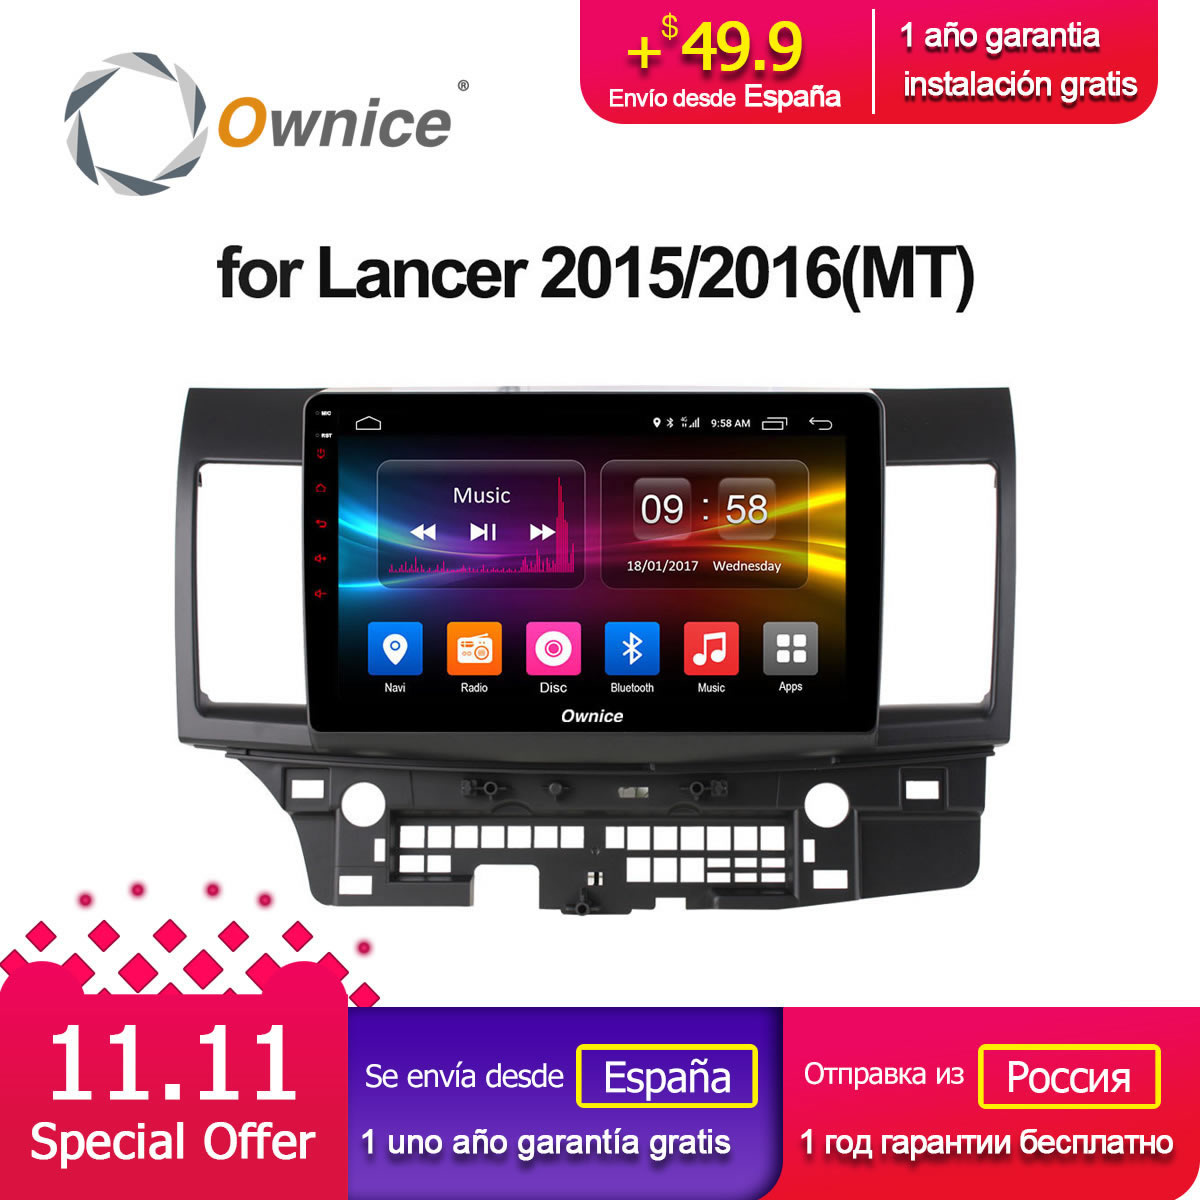 Ownice C500+ G10 Android 8.1 Octa 8 core 10.2 Car dvd GPS stereo radio for Mitsubishi Lancer 2015/2016(MT) 2G Ram 4G LTE DAB+ ownice c500 g10 octa core 2gb ram 32g rom android car dvd 8 1 gps for mazda 6 summit 2009 2015 wifi 4g lte radio dab dvr